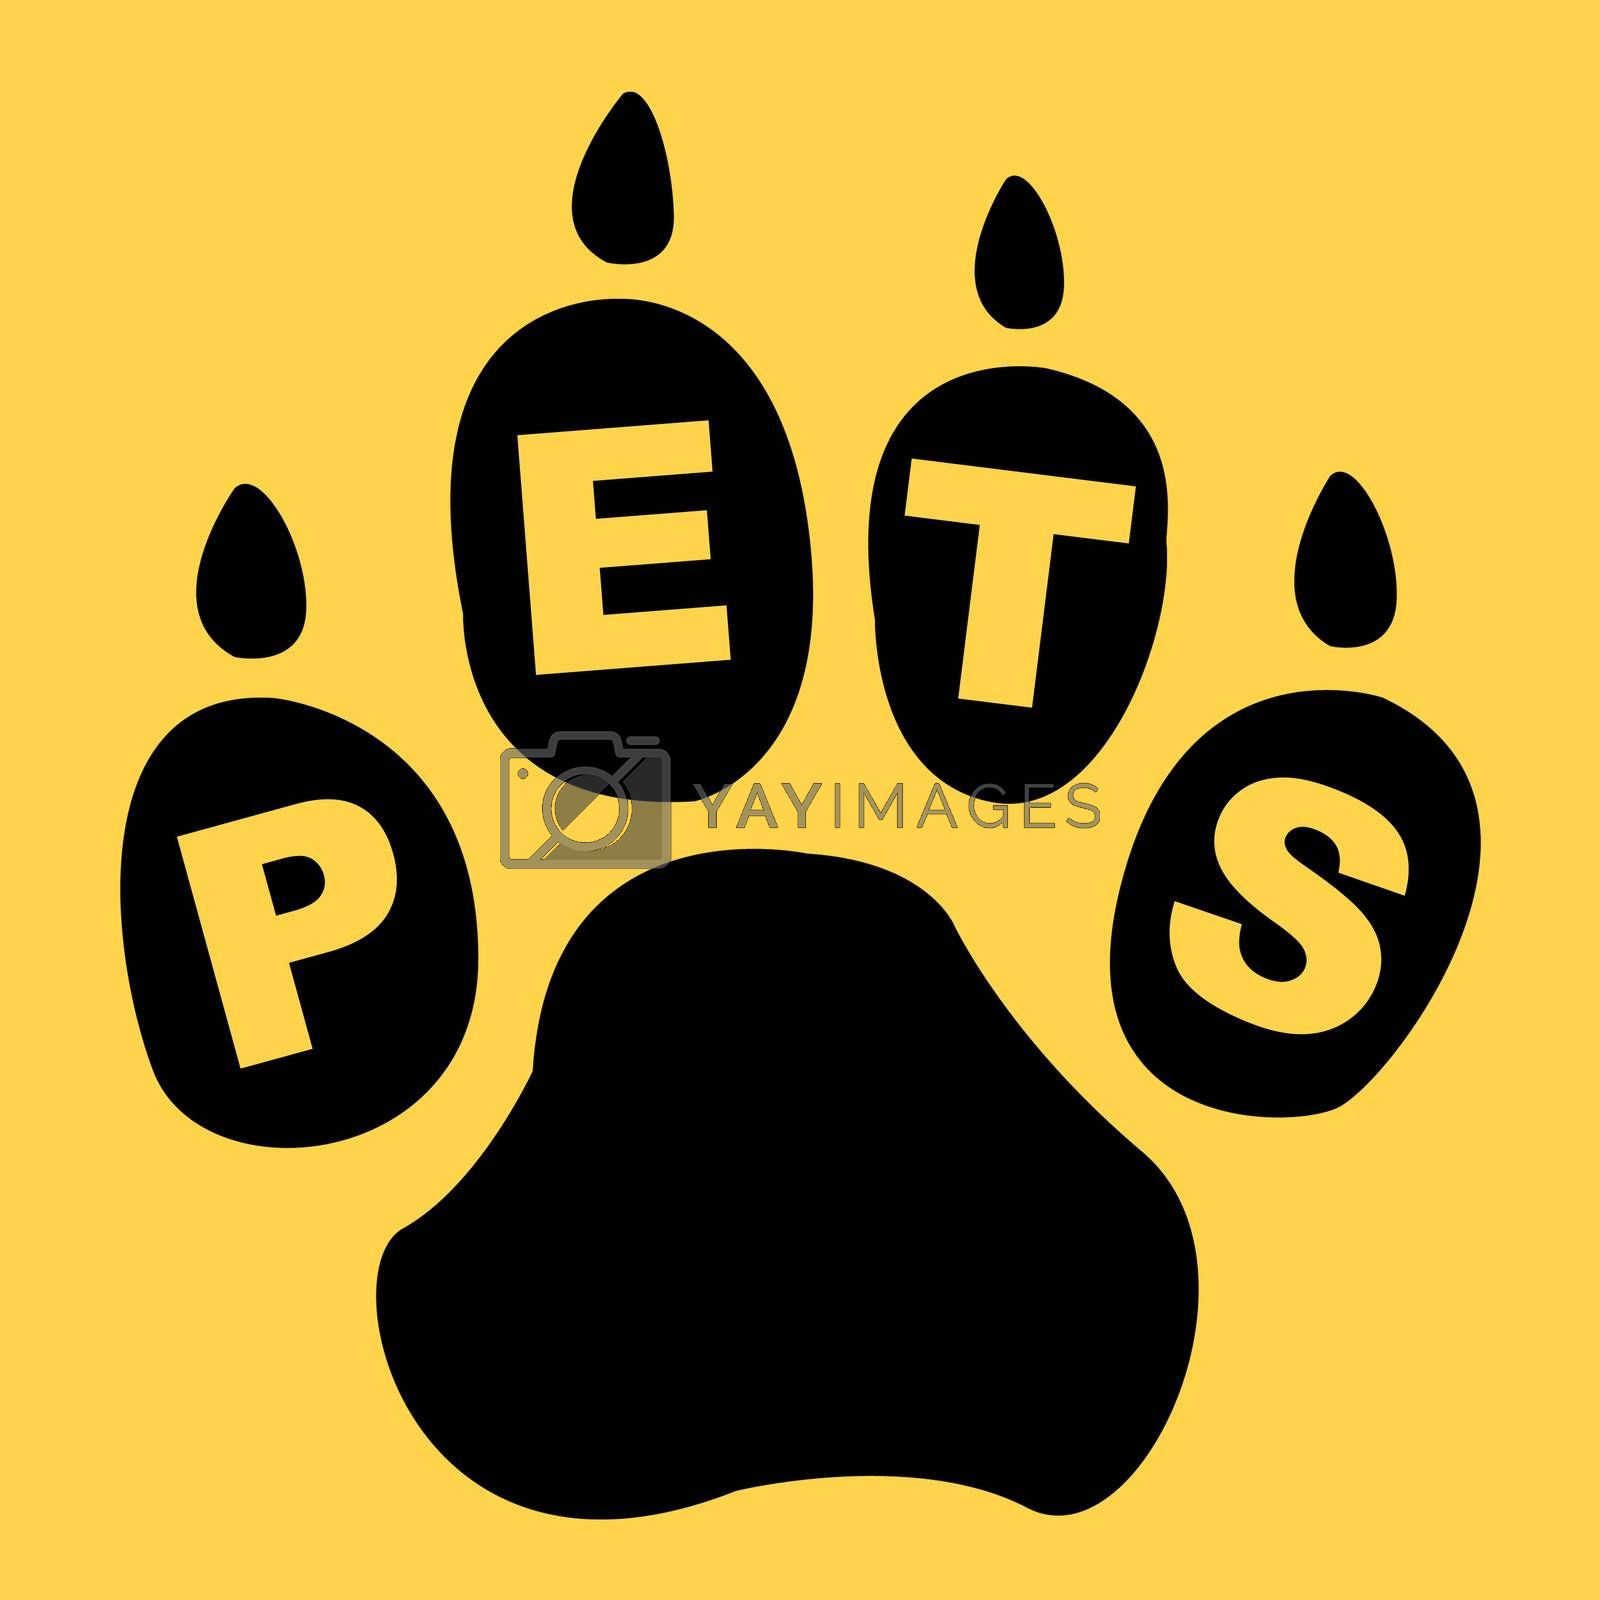 Pets Paw Shows Domestic Animal And Creature by stuartmiles